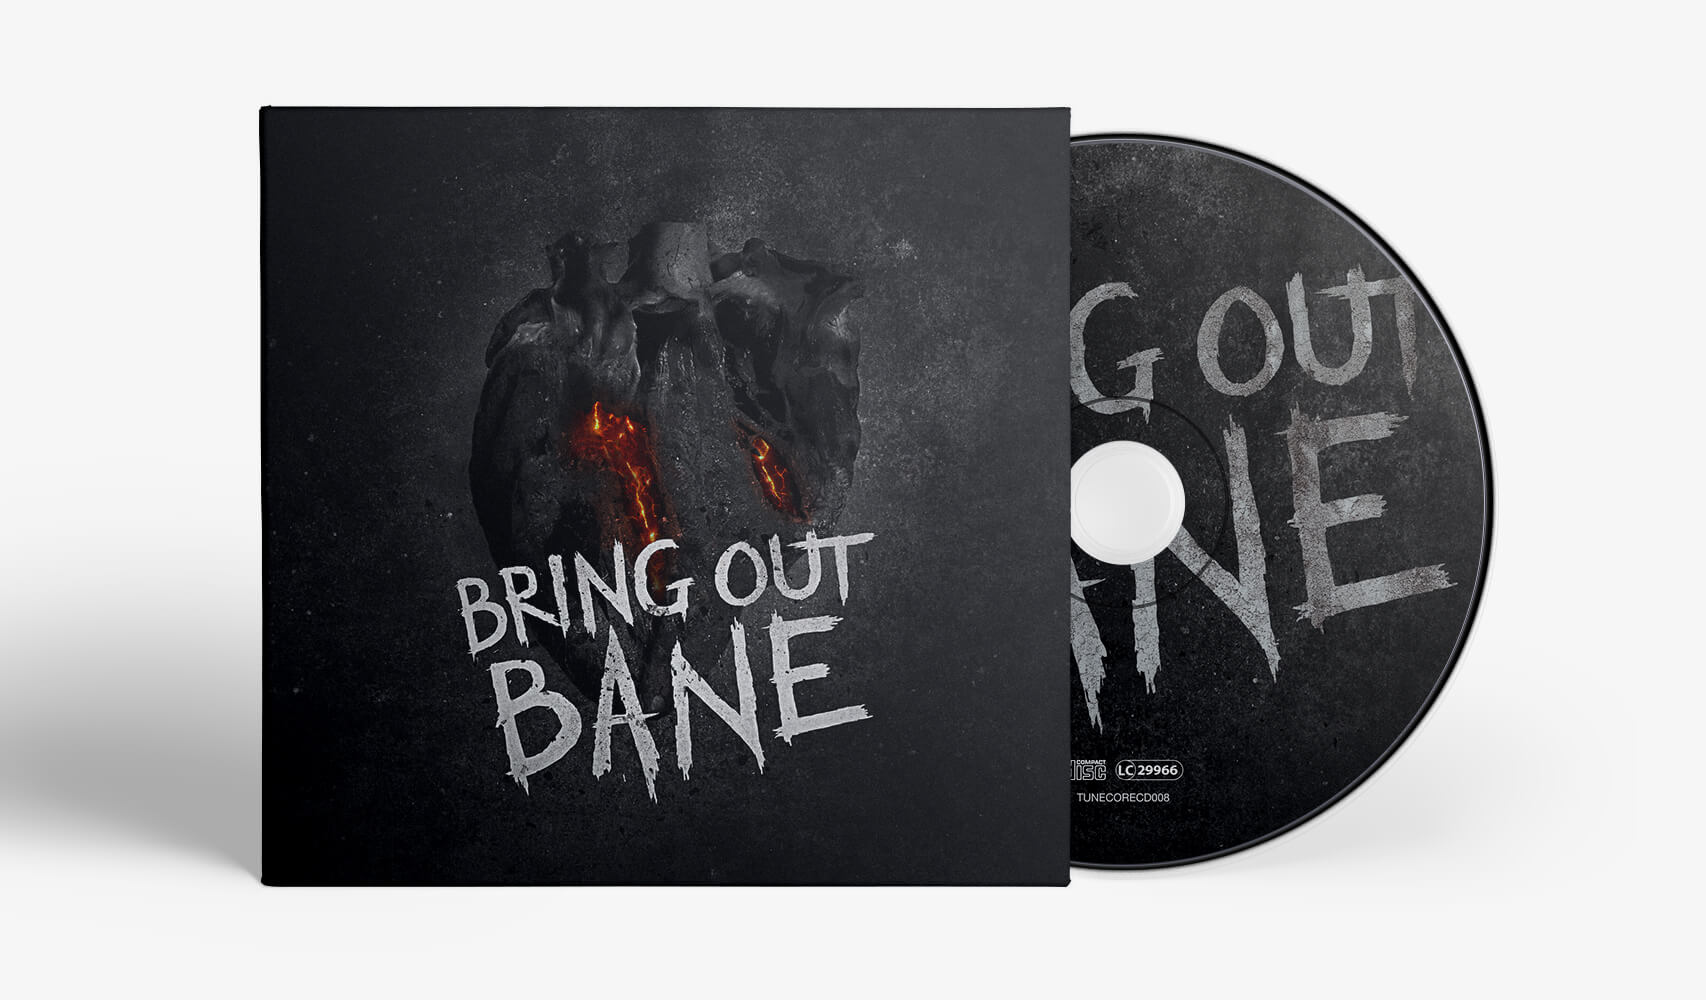 Bring Out Bane EP digipak